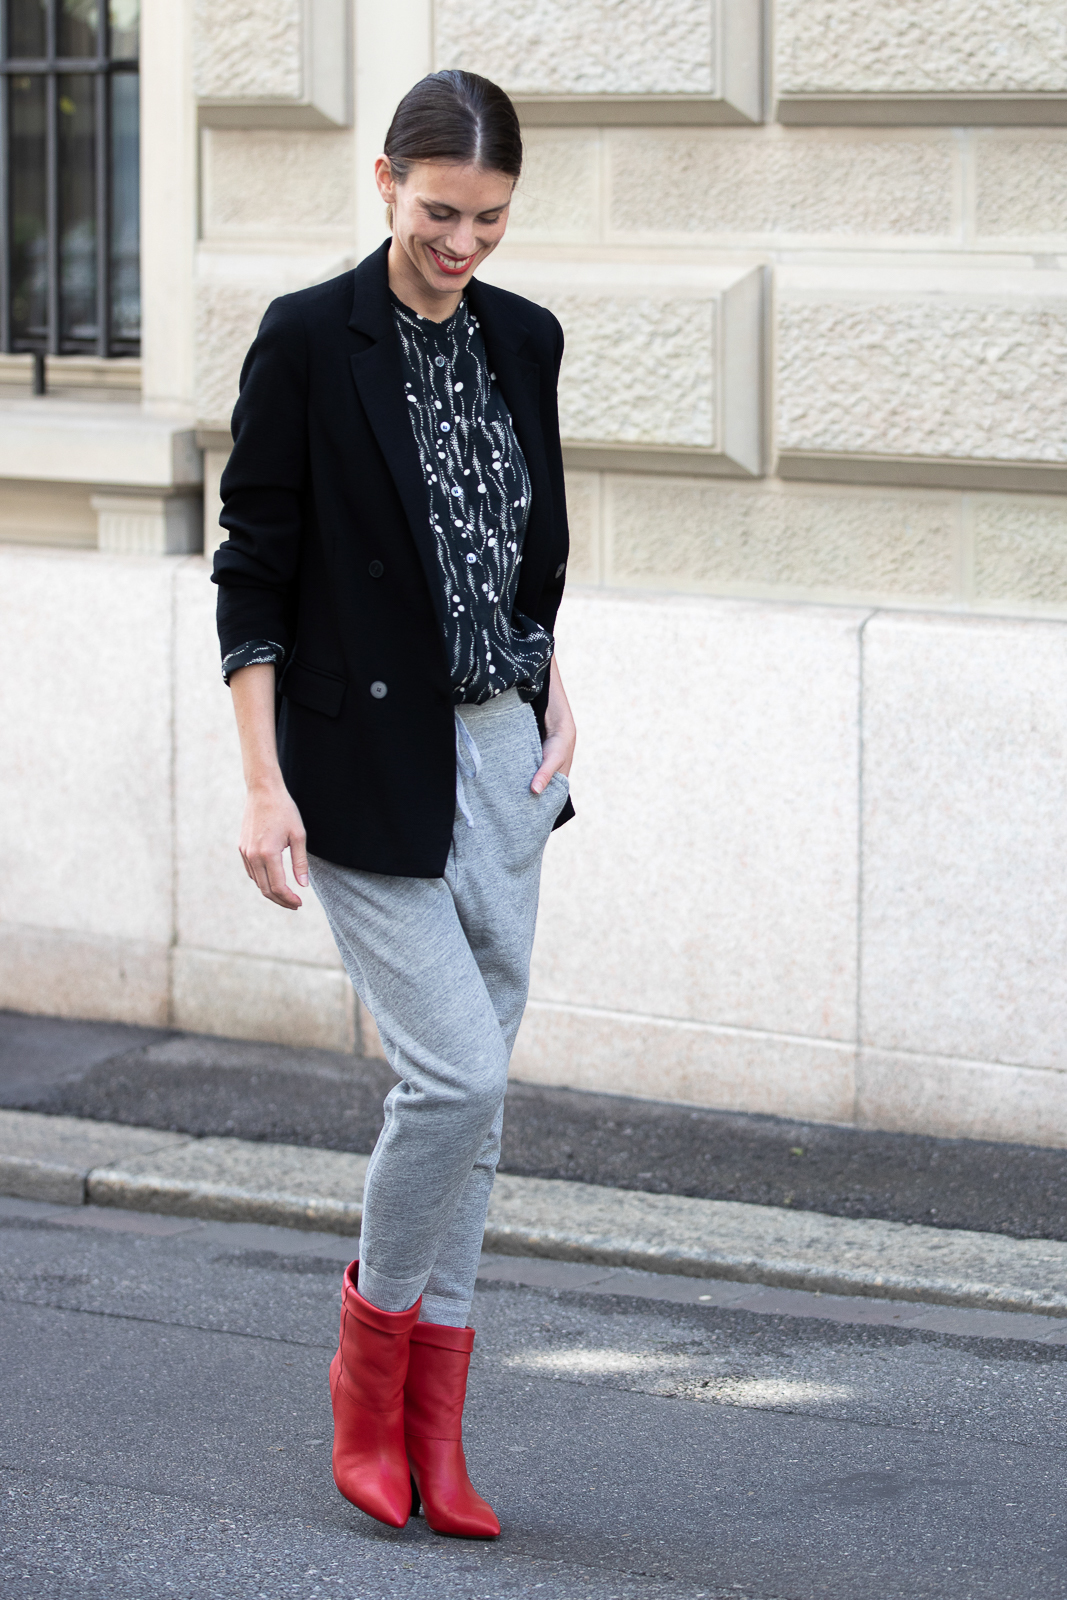 Daily Outfits, Forte Forte, Isabel Marant, Nili Lotan, Vestibule, Zurich